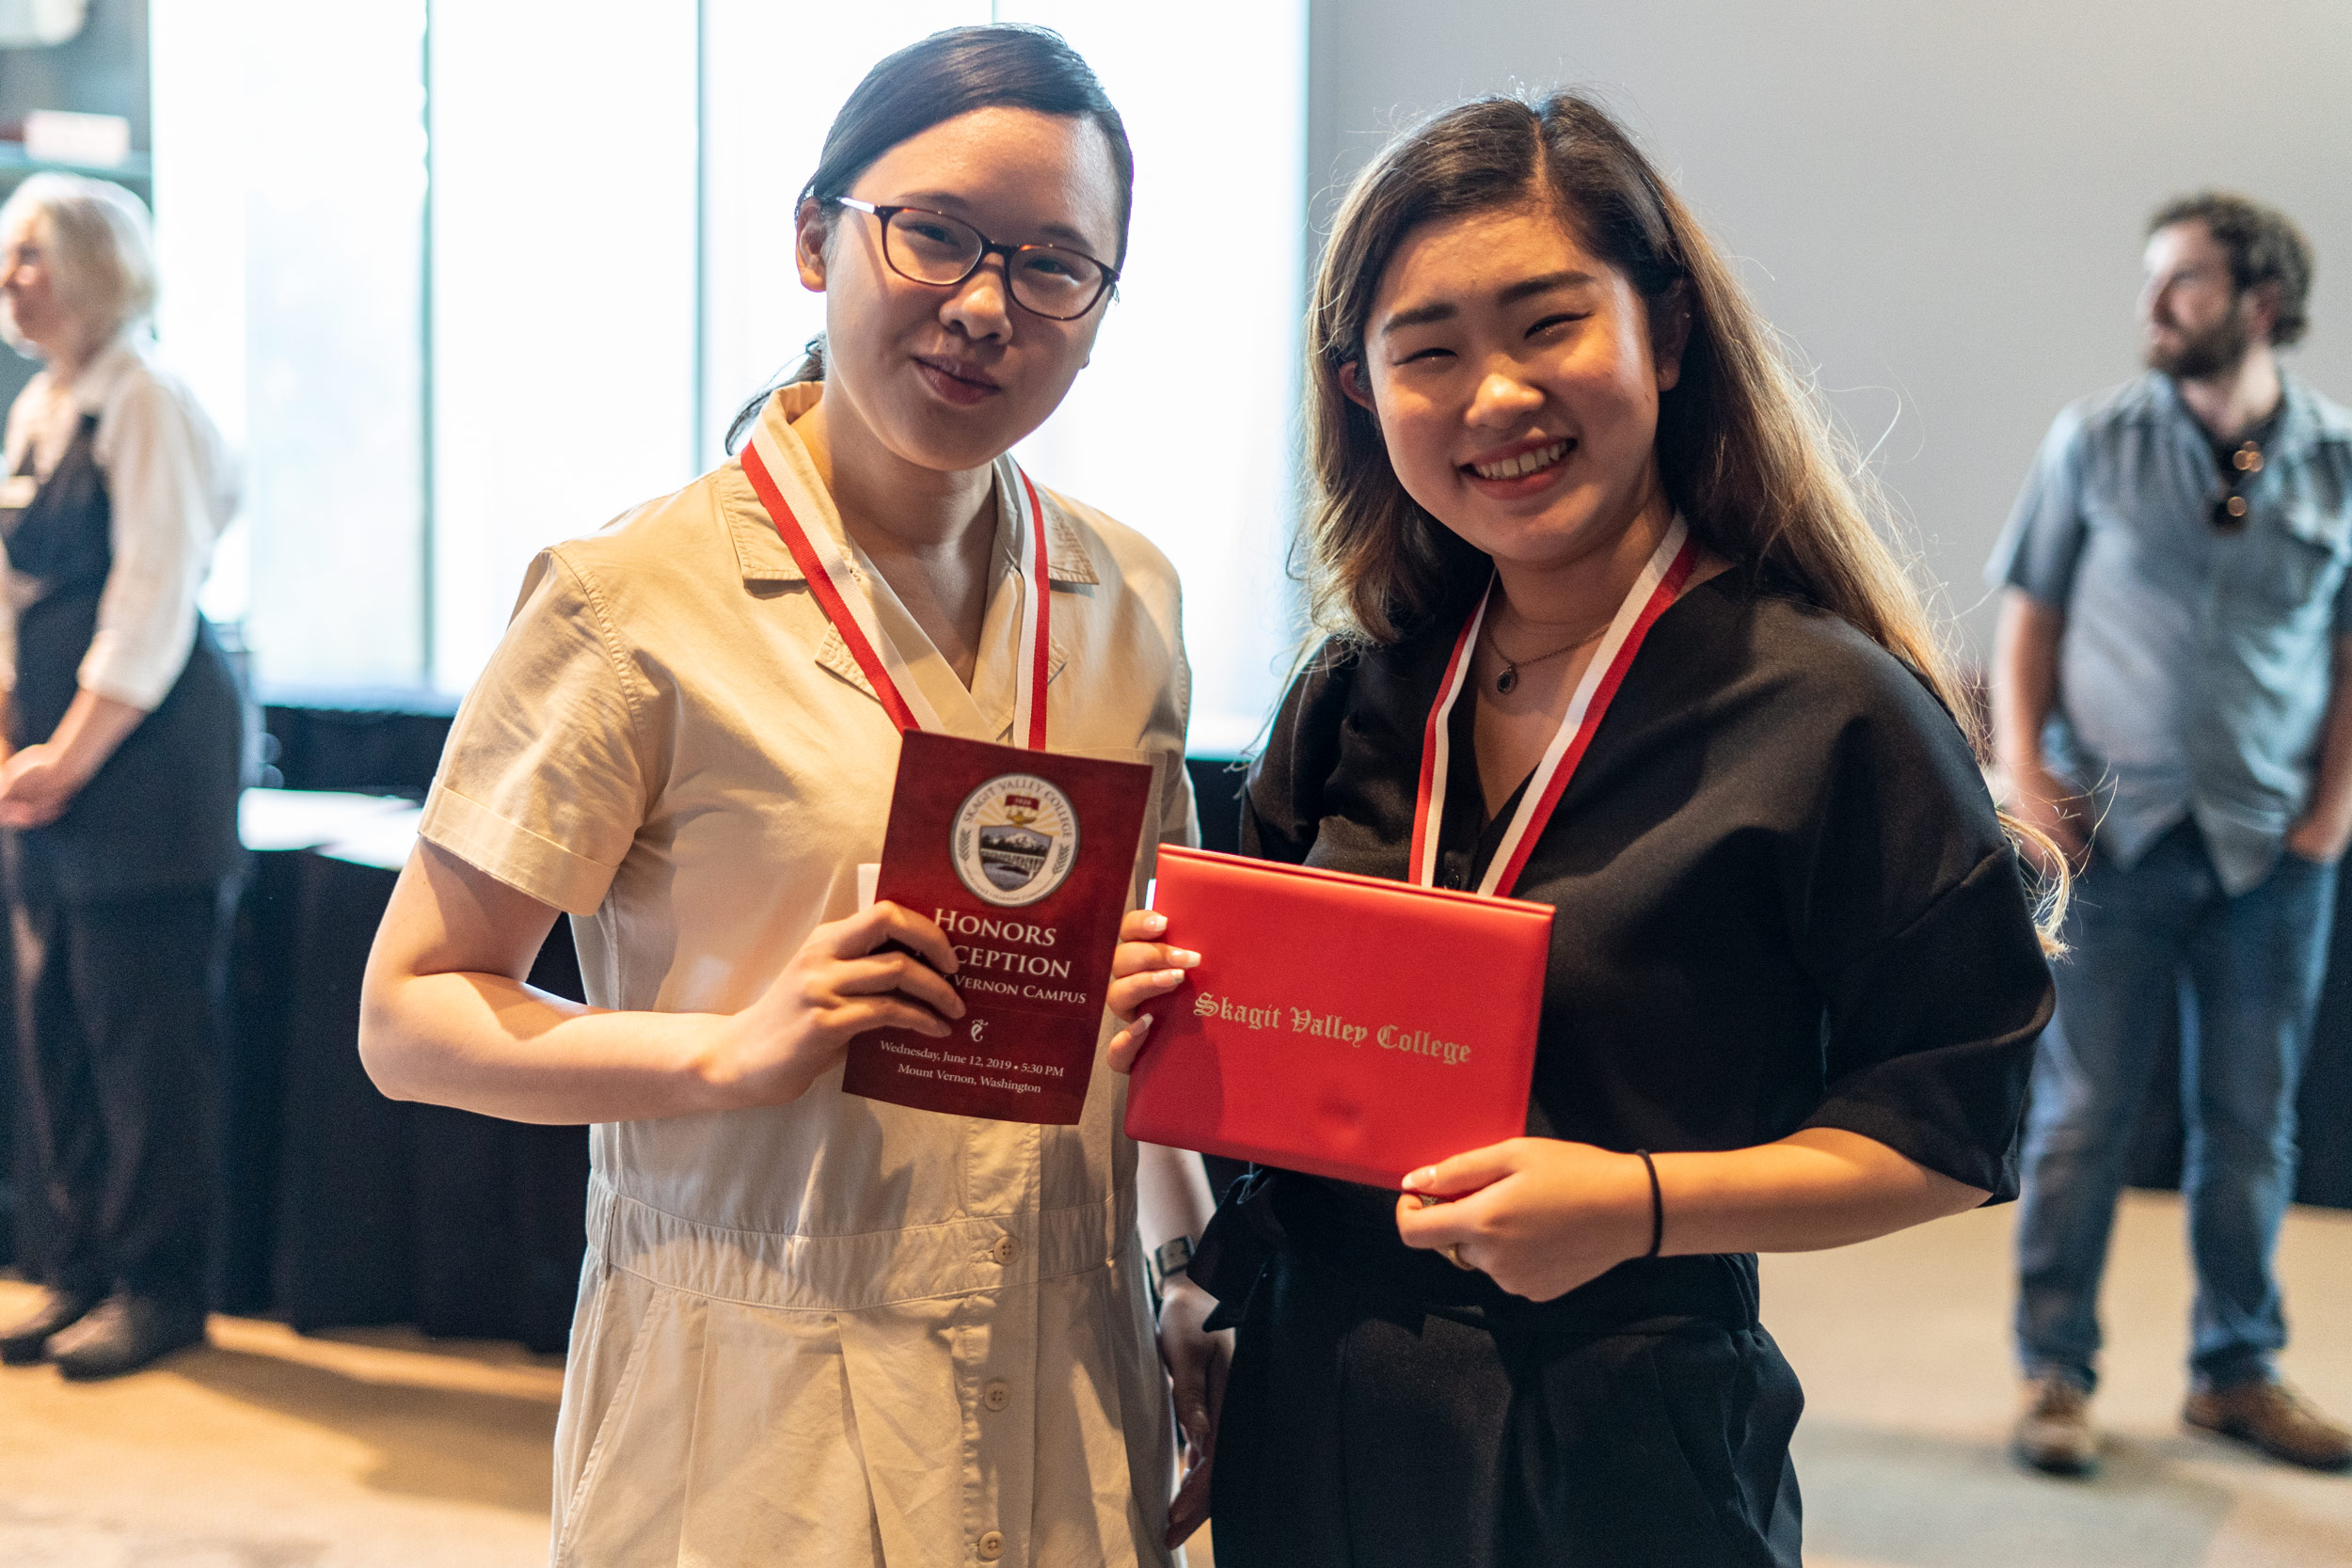 img_mv-honors_2-recipients_7589_25x1667